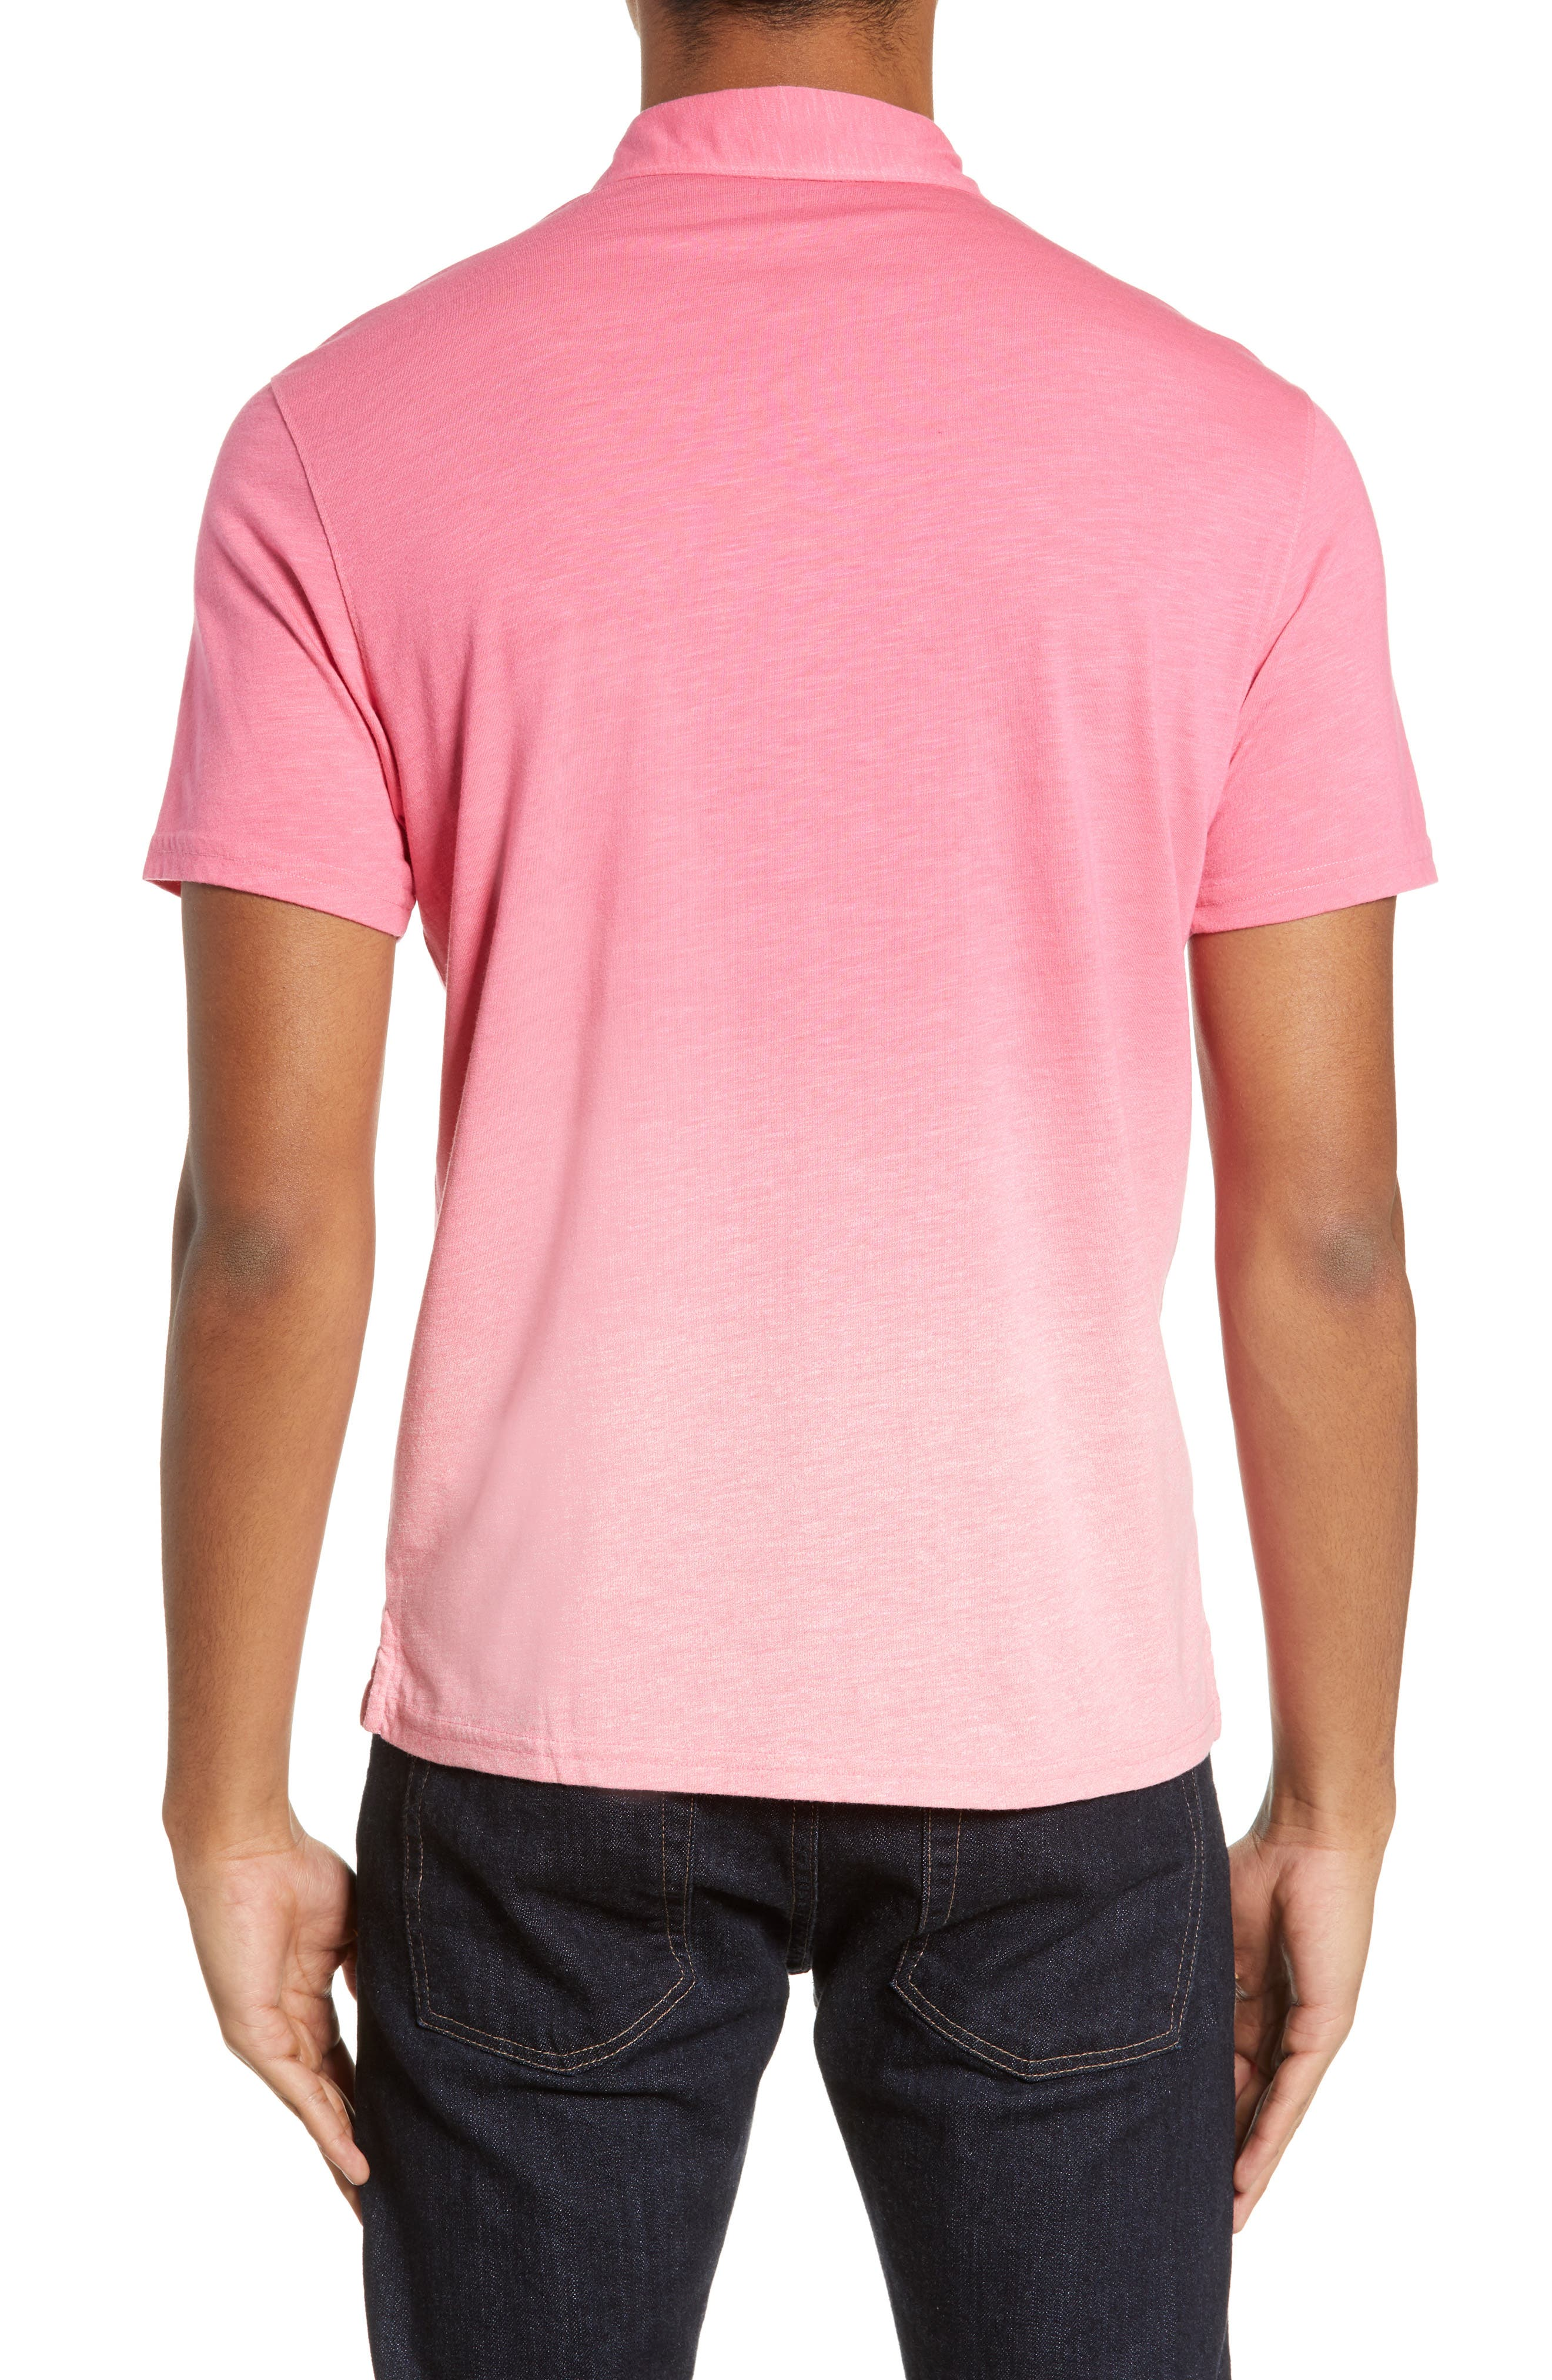 ZACHARY PRELL, Shelter Island Dip Dye Polo, Alternate thumbnail 2, color, BRIGHT PINK